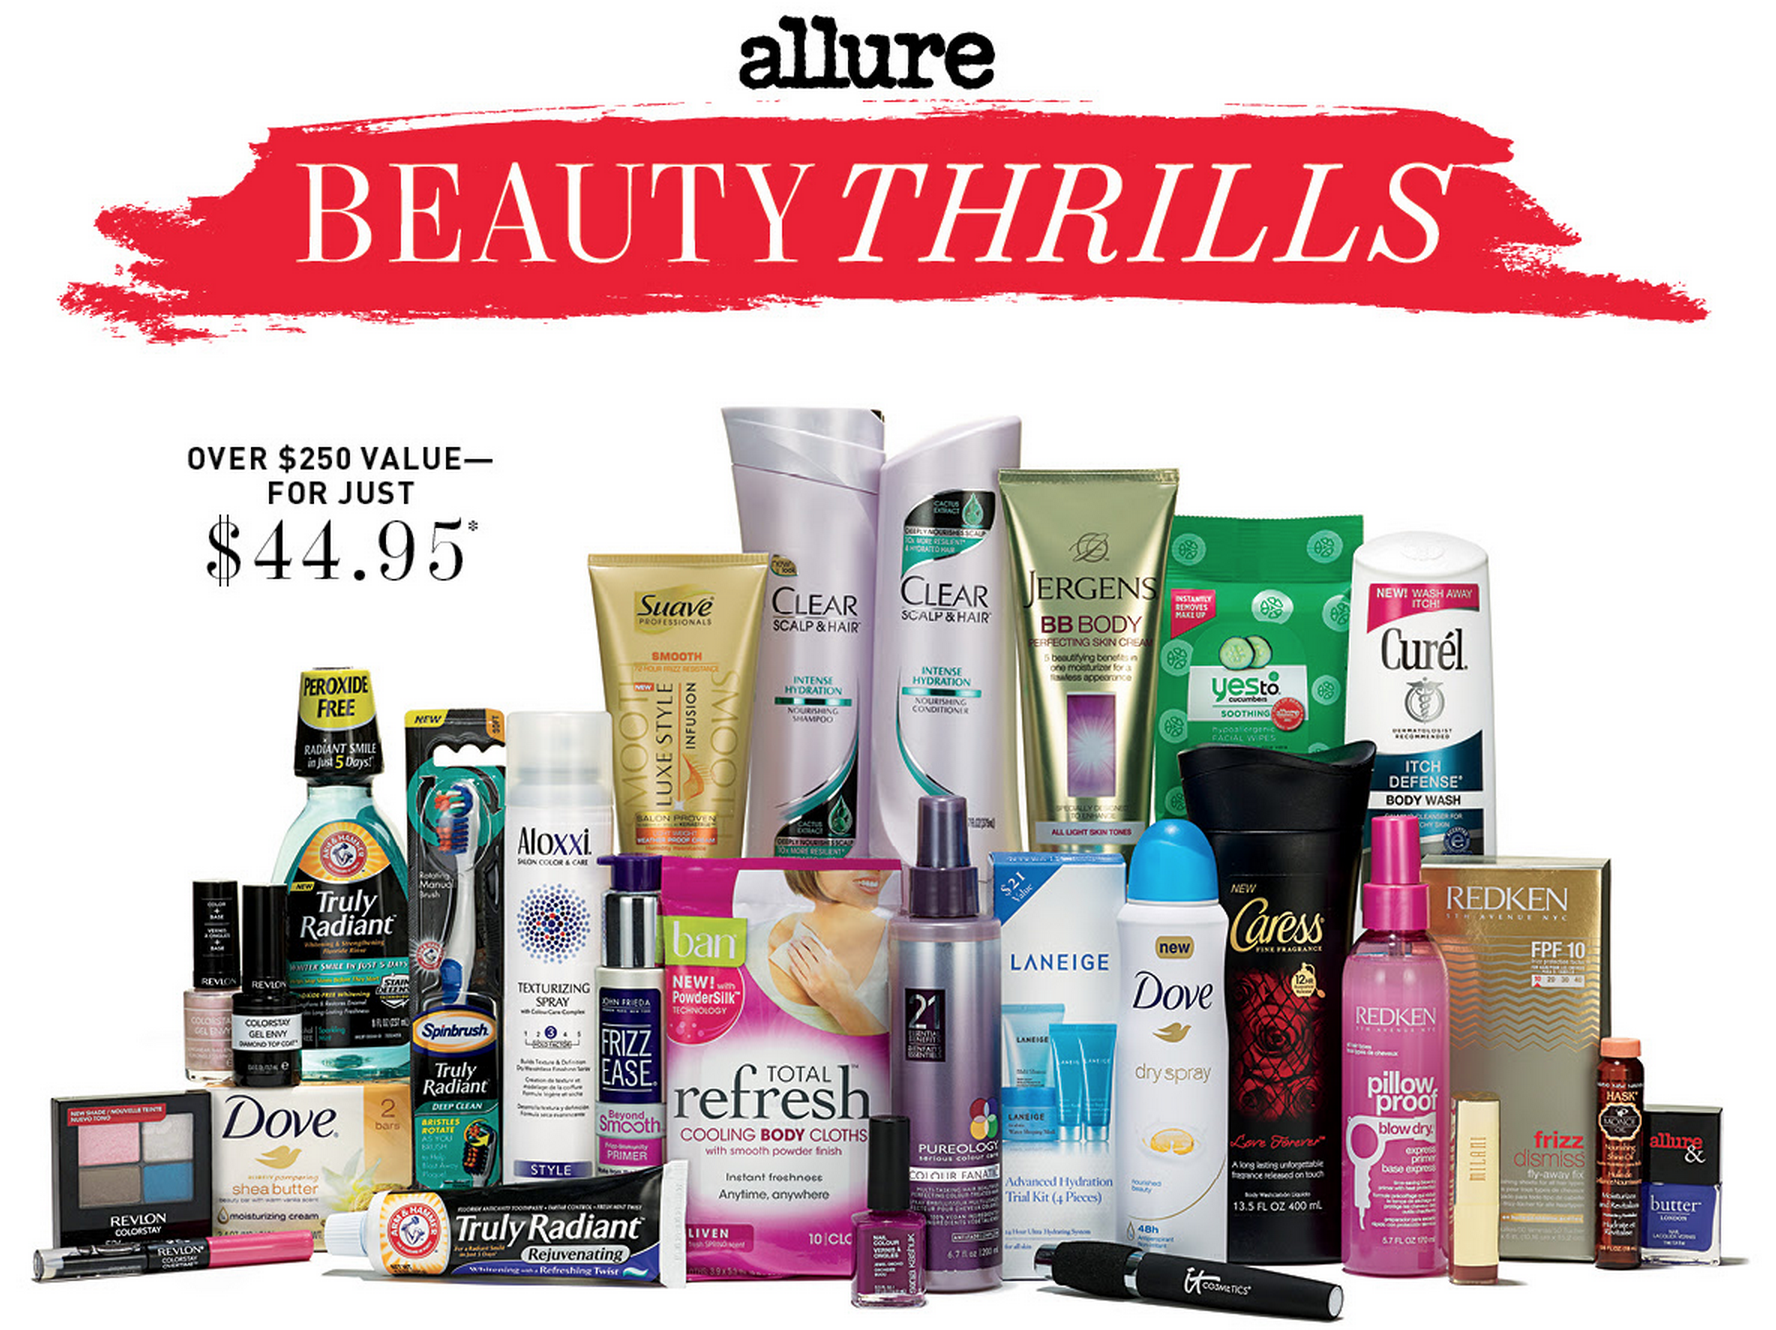 Allure Beauty Thrills July Box!